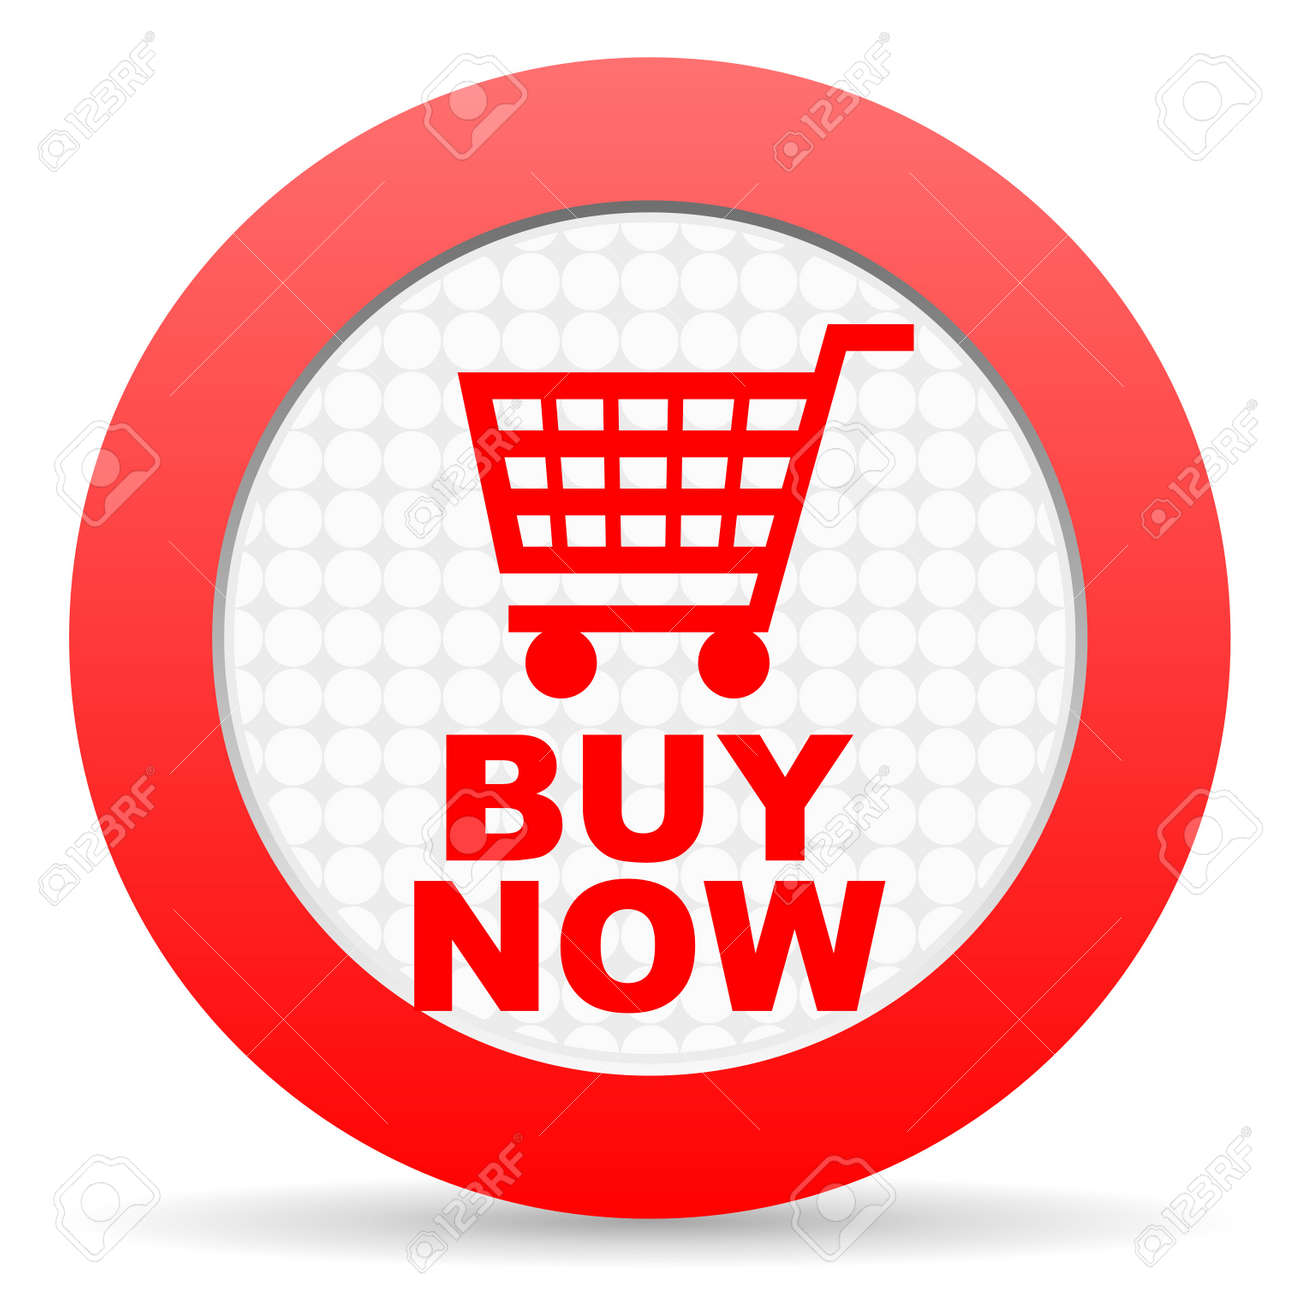 buy now icon Stock Photo - 16225622